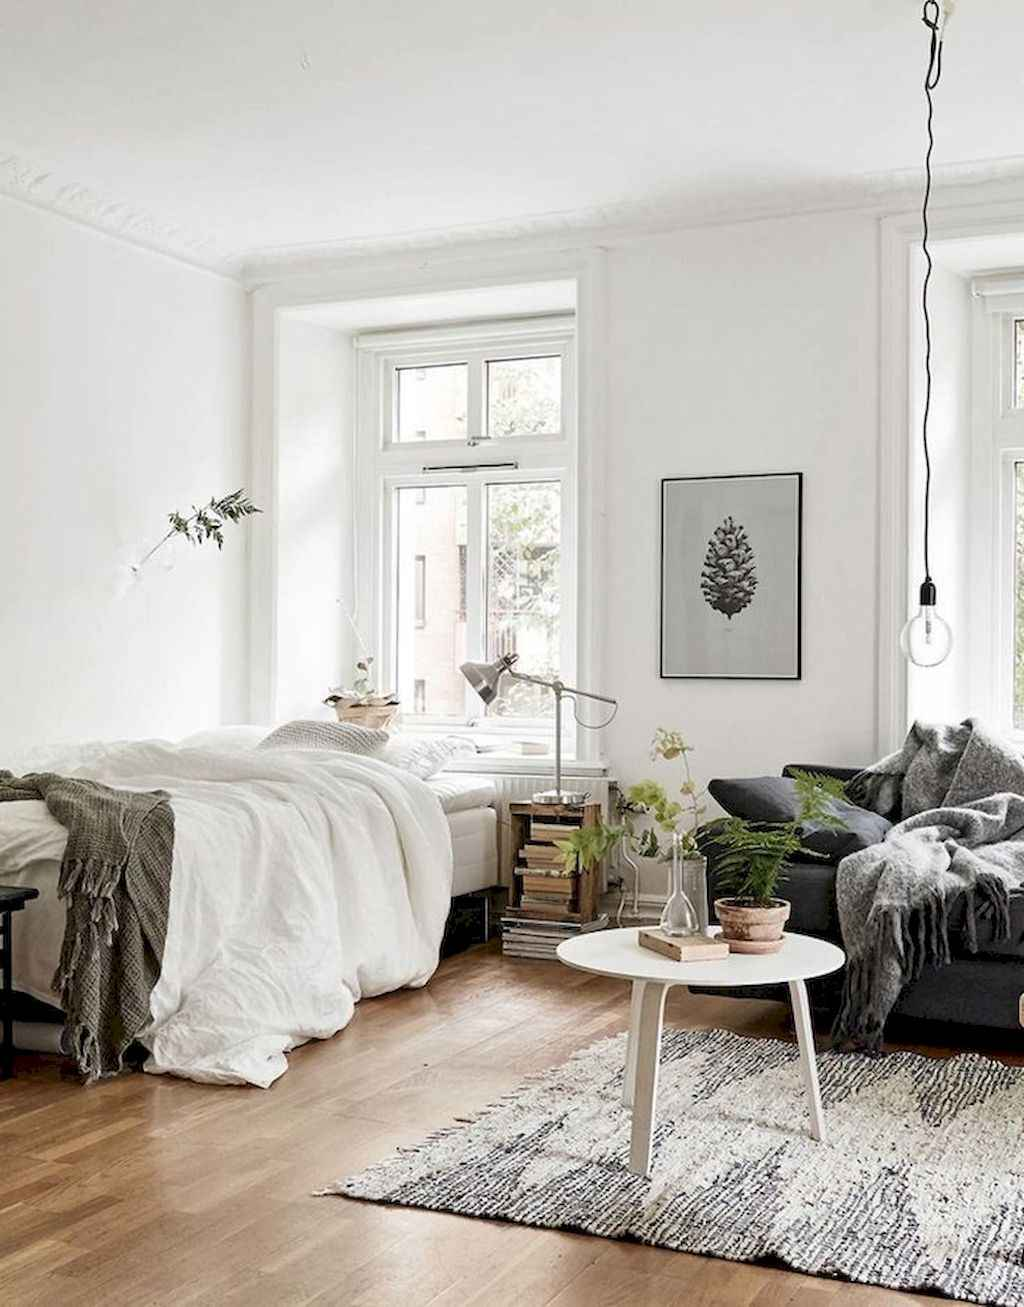 Clever college apartment decorating ideas on a budget (26)